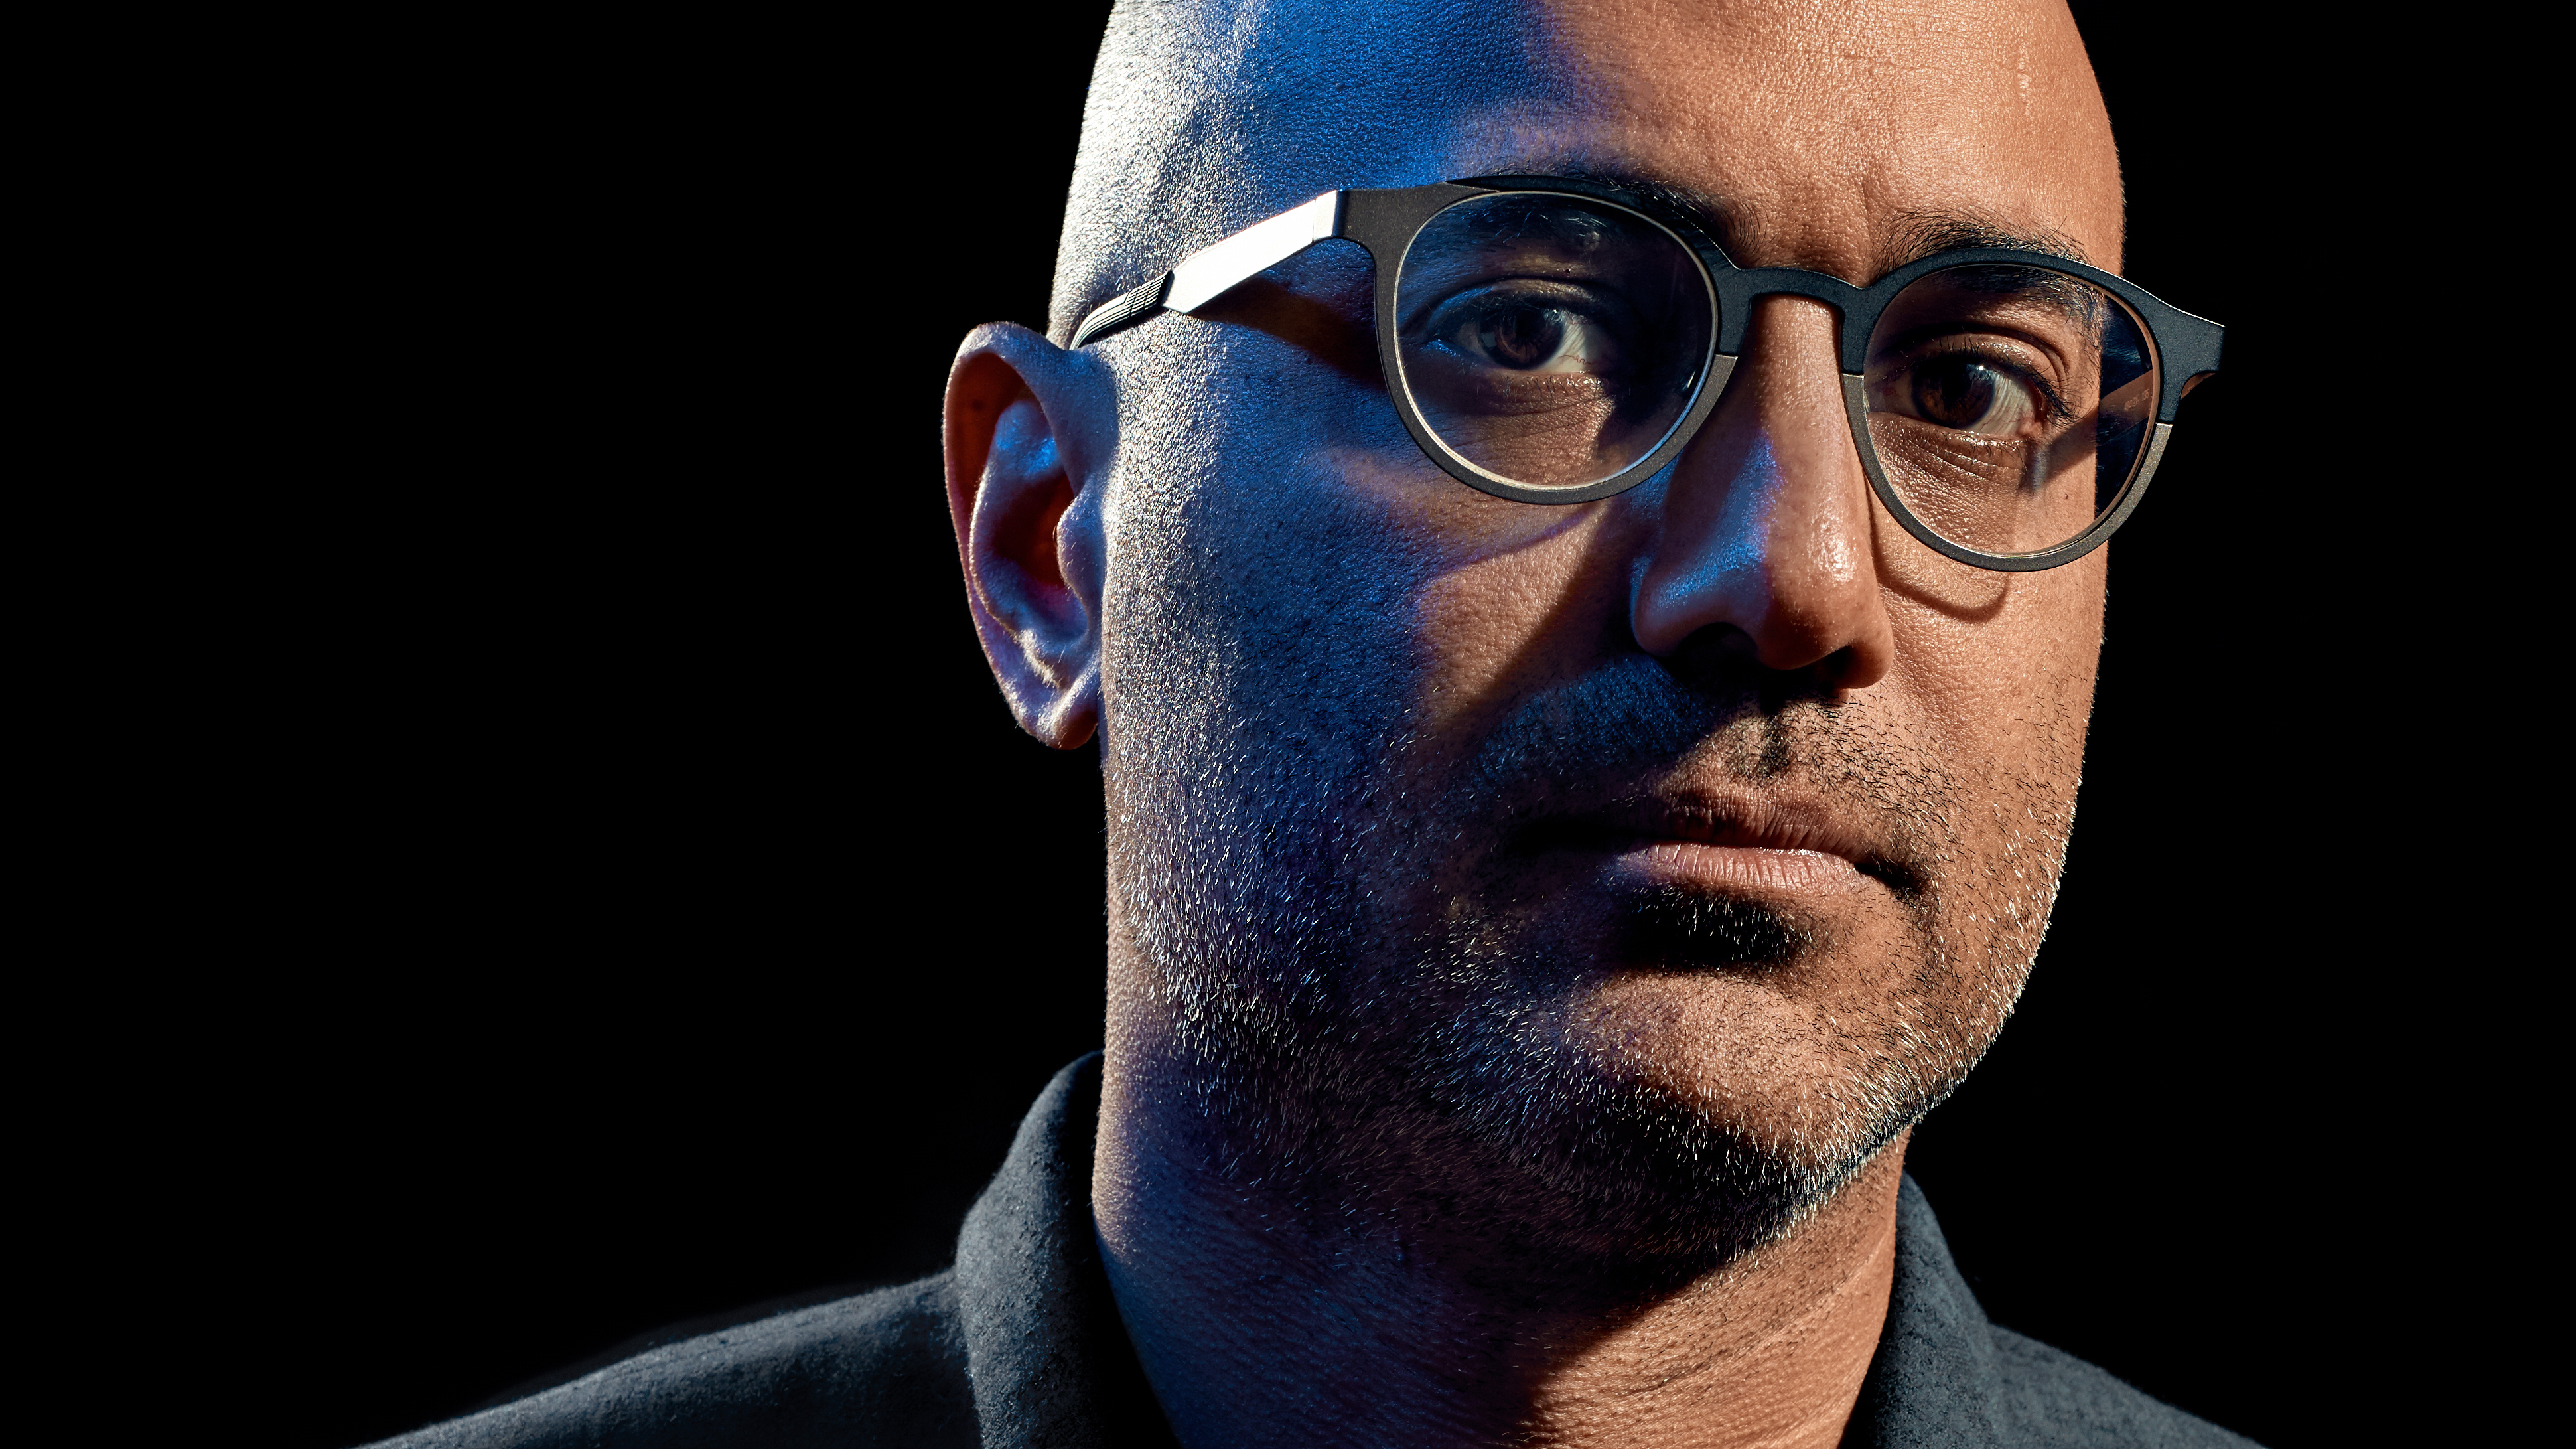 Ayad Akhtar won a Pulitzer Prize for Disgraced, his play about a conflicted American Muslim man living in New York after Sept. 11.